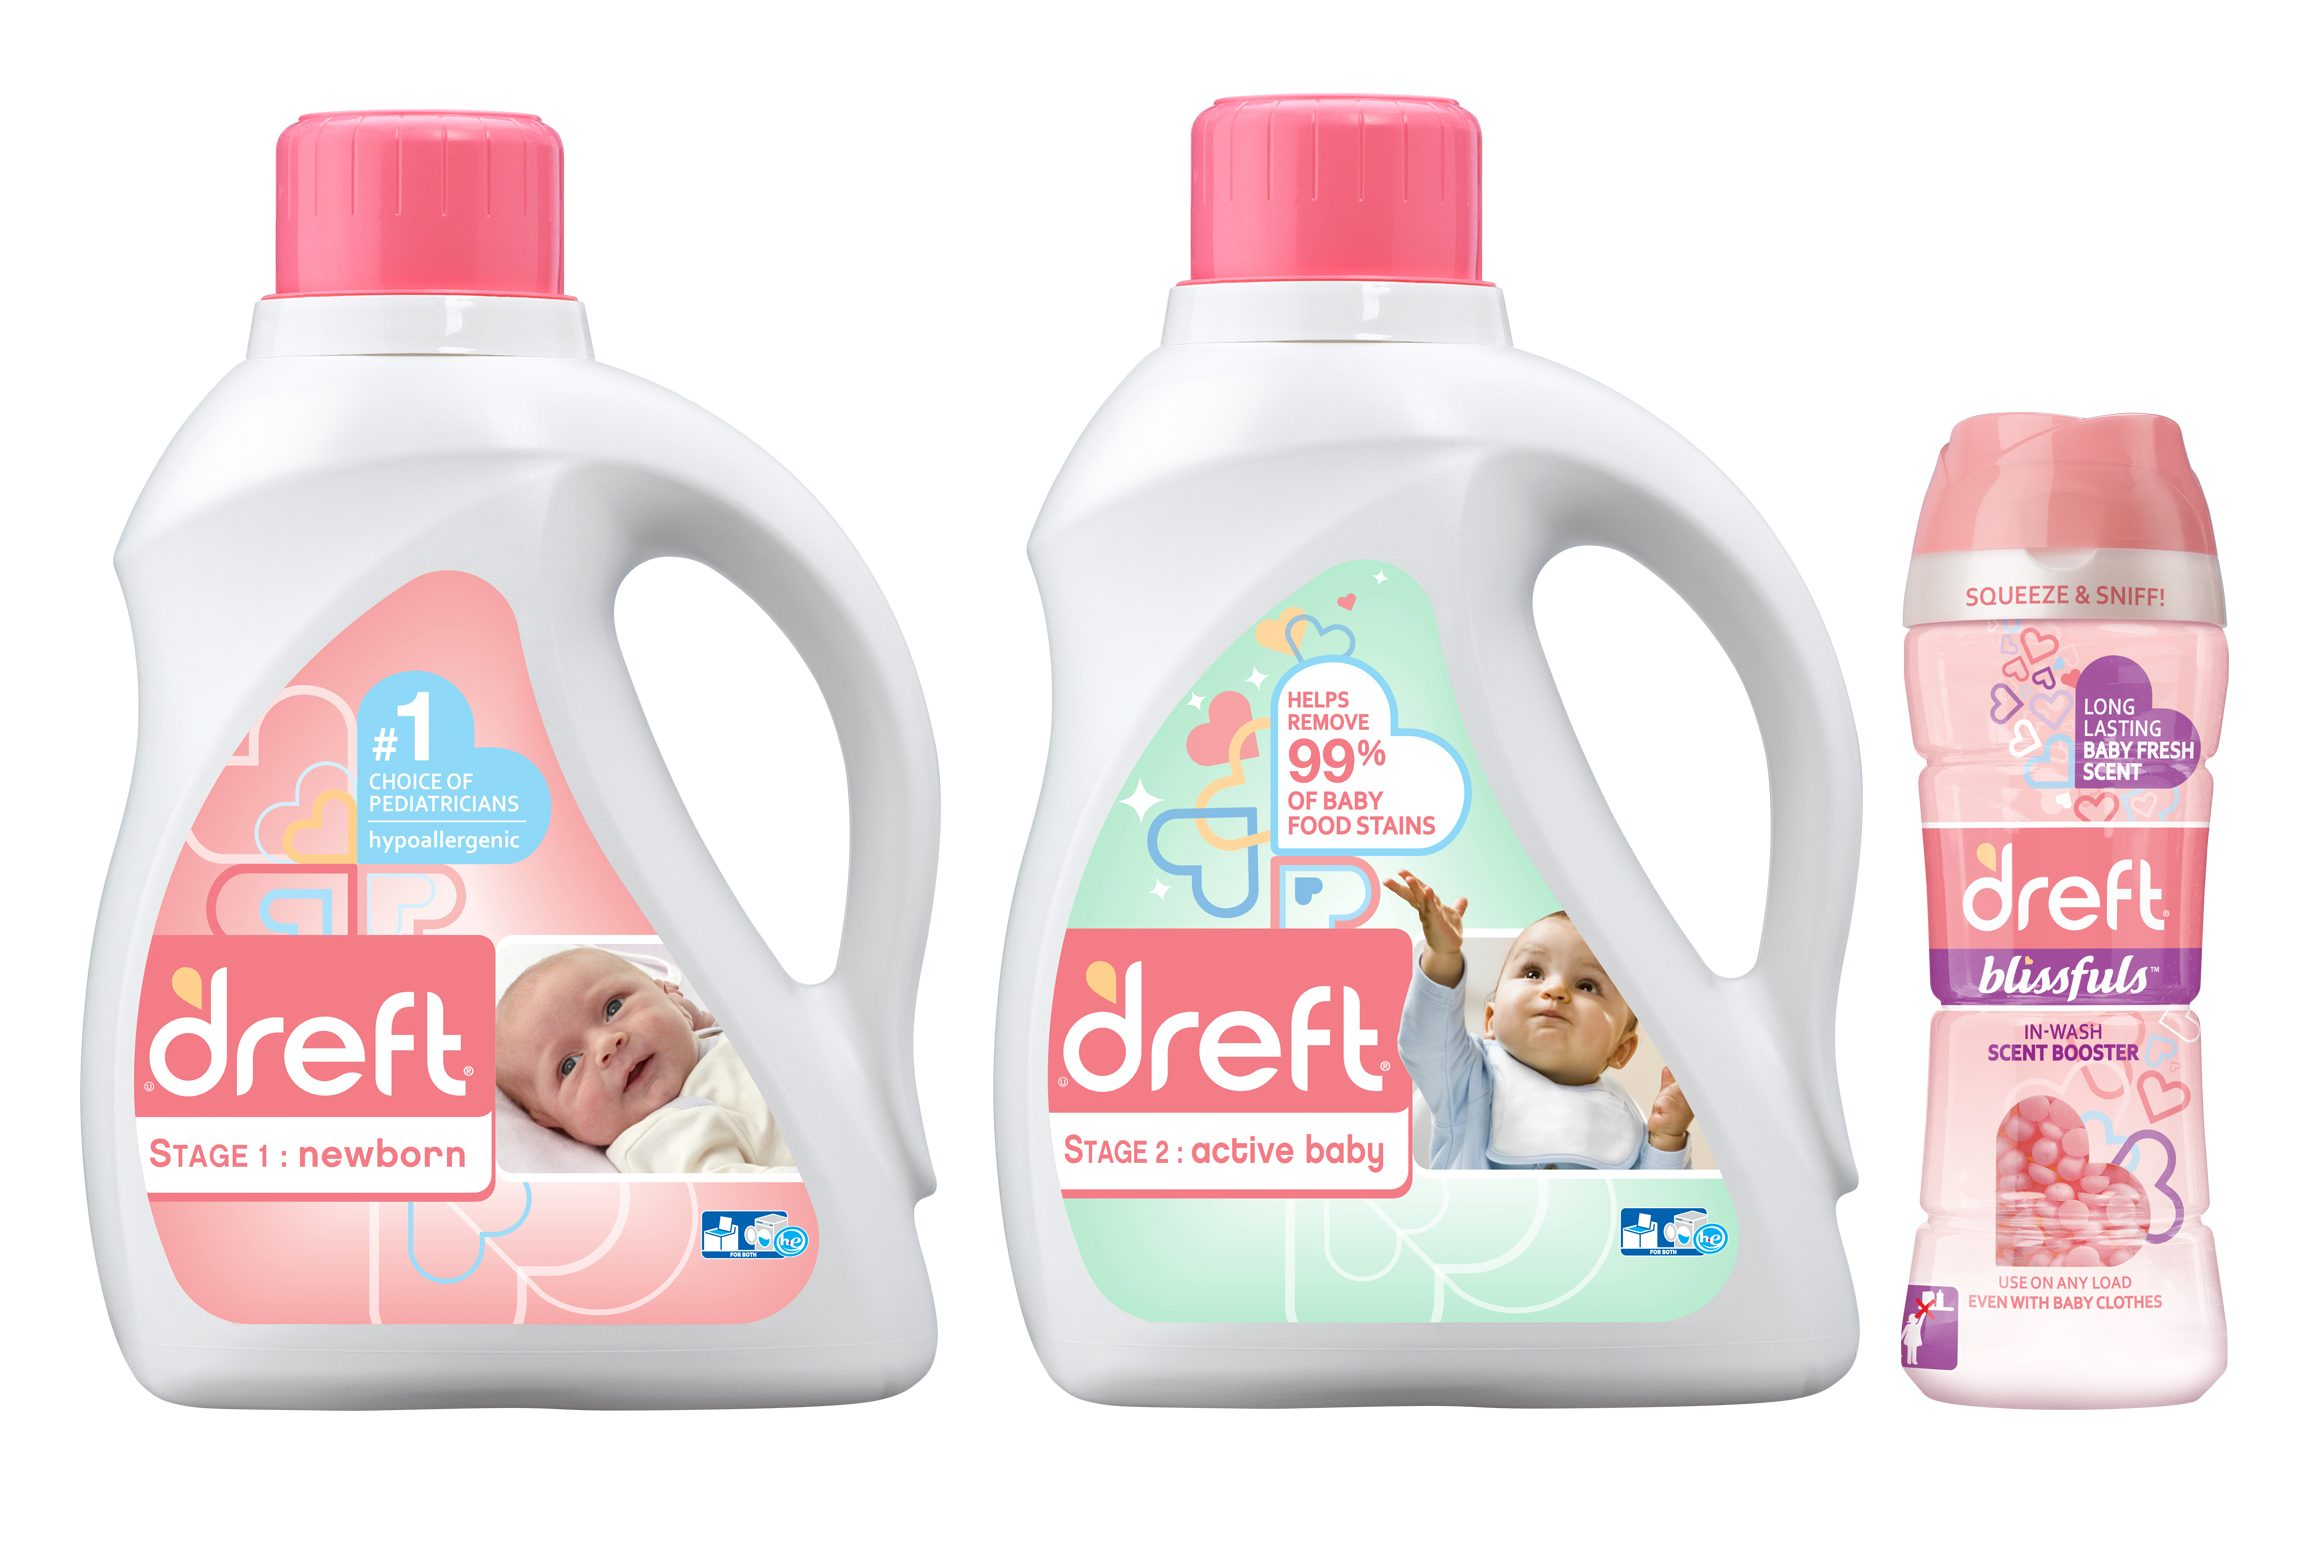 #Dreft #Baby #MessiestBabyContest #Giveaway #ad